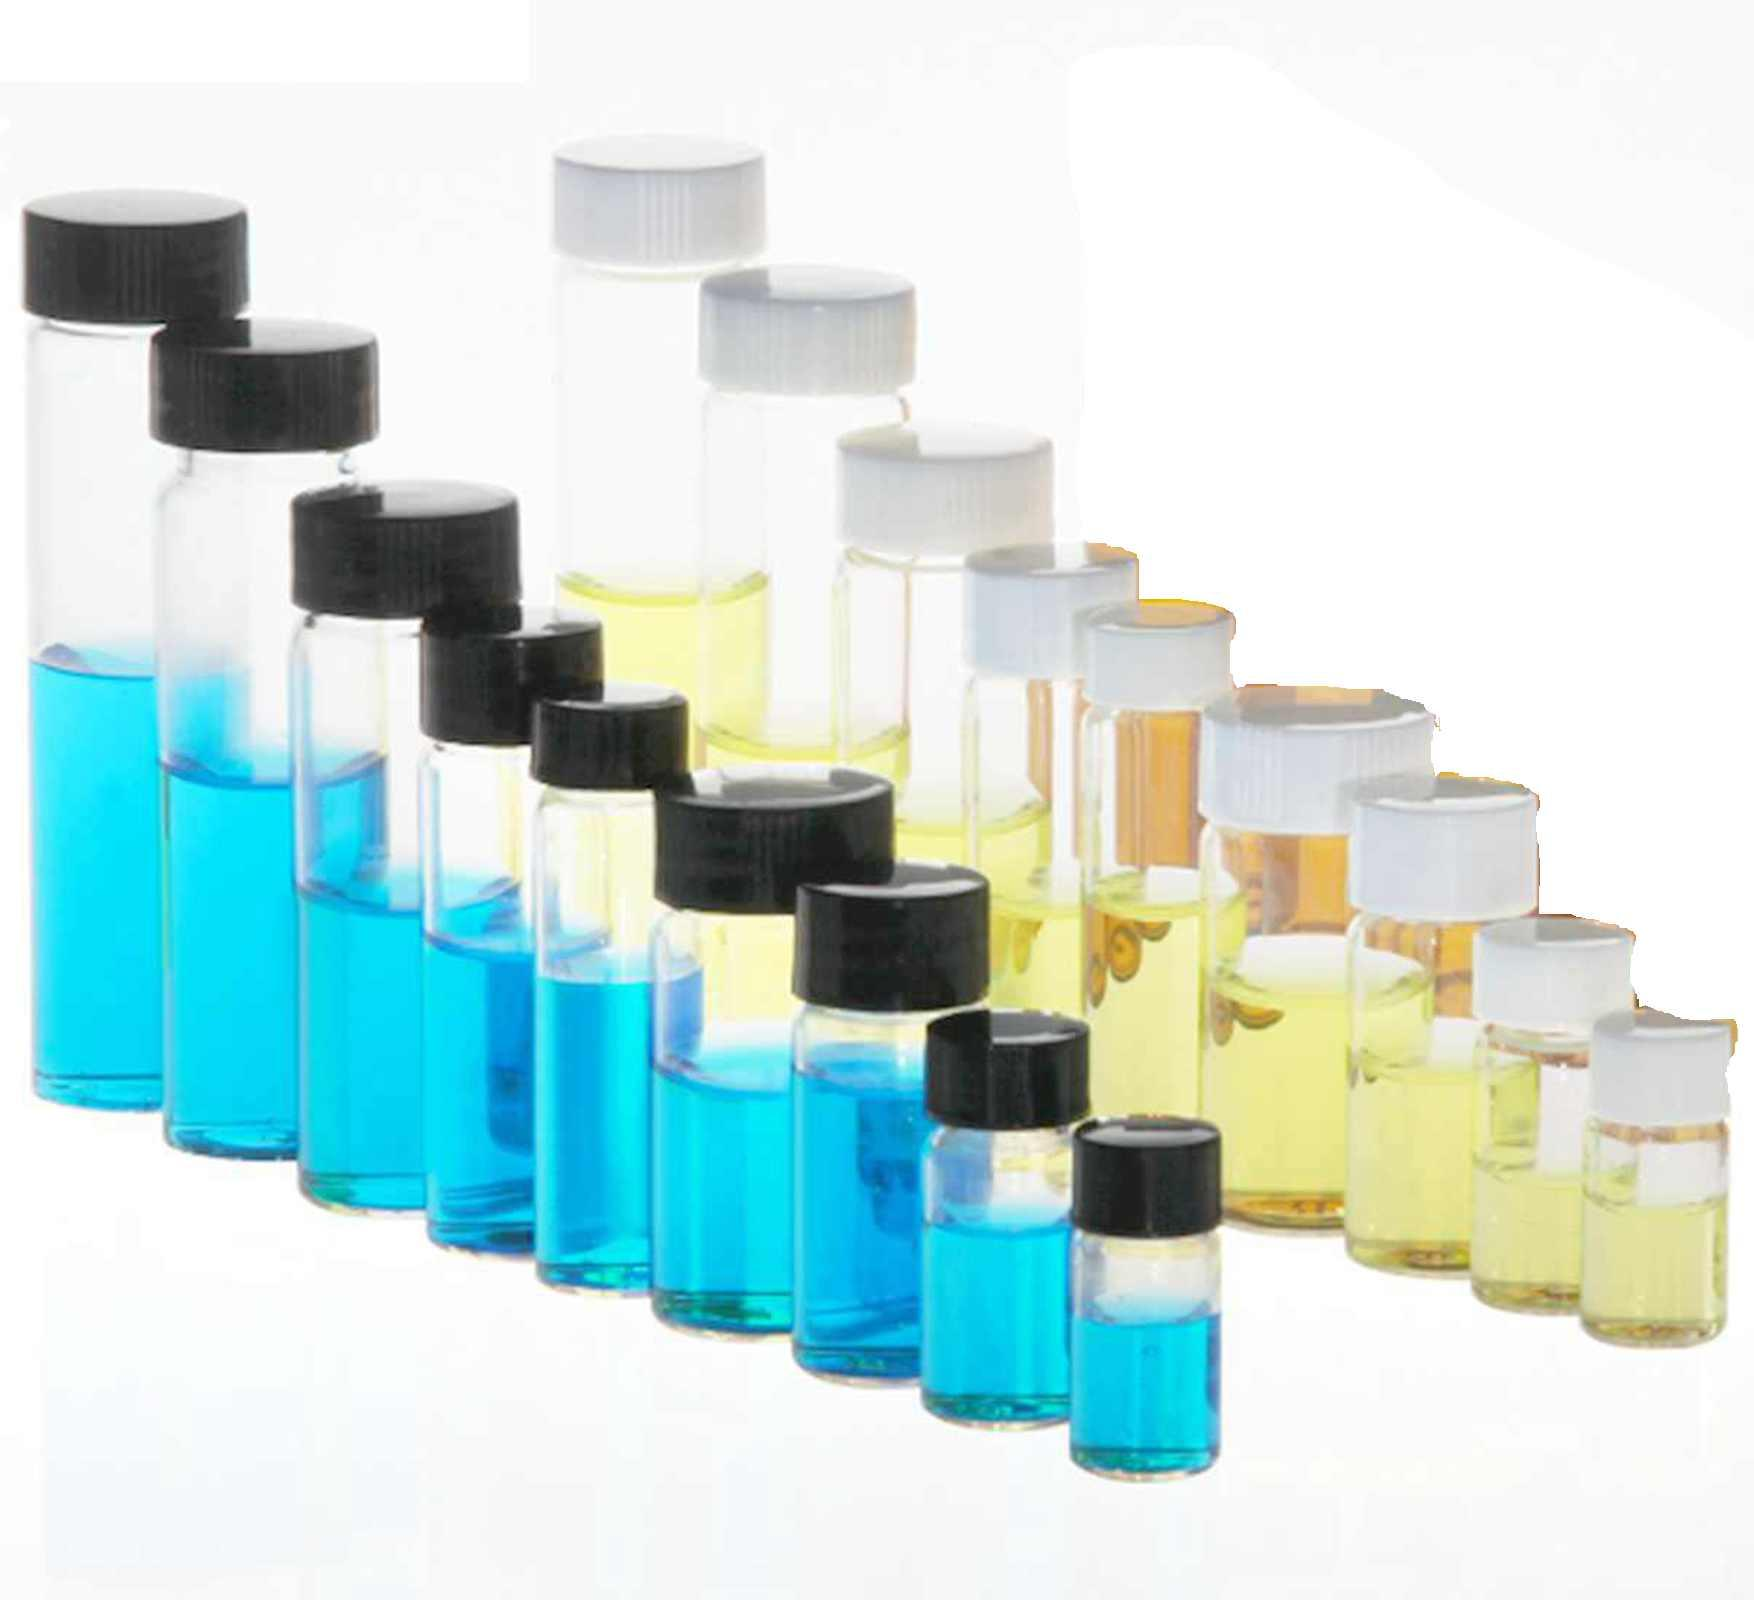 3ml/5ml/10ml/15ml/20ml/30ml/40ml/50ml  Clear Glass Seal Bottle Reagent Sample Vials Plastic Lid Screw Cap